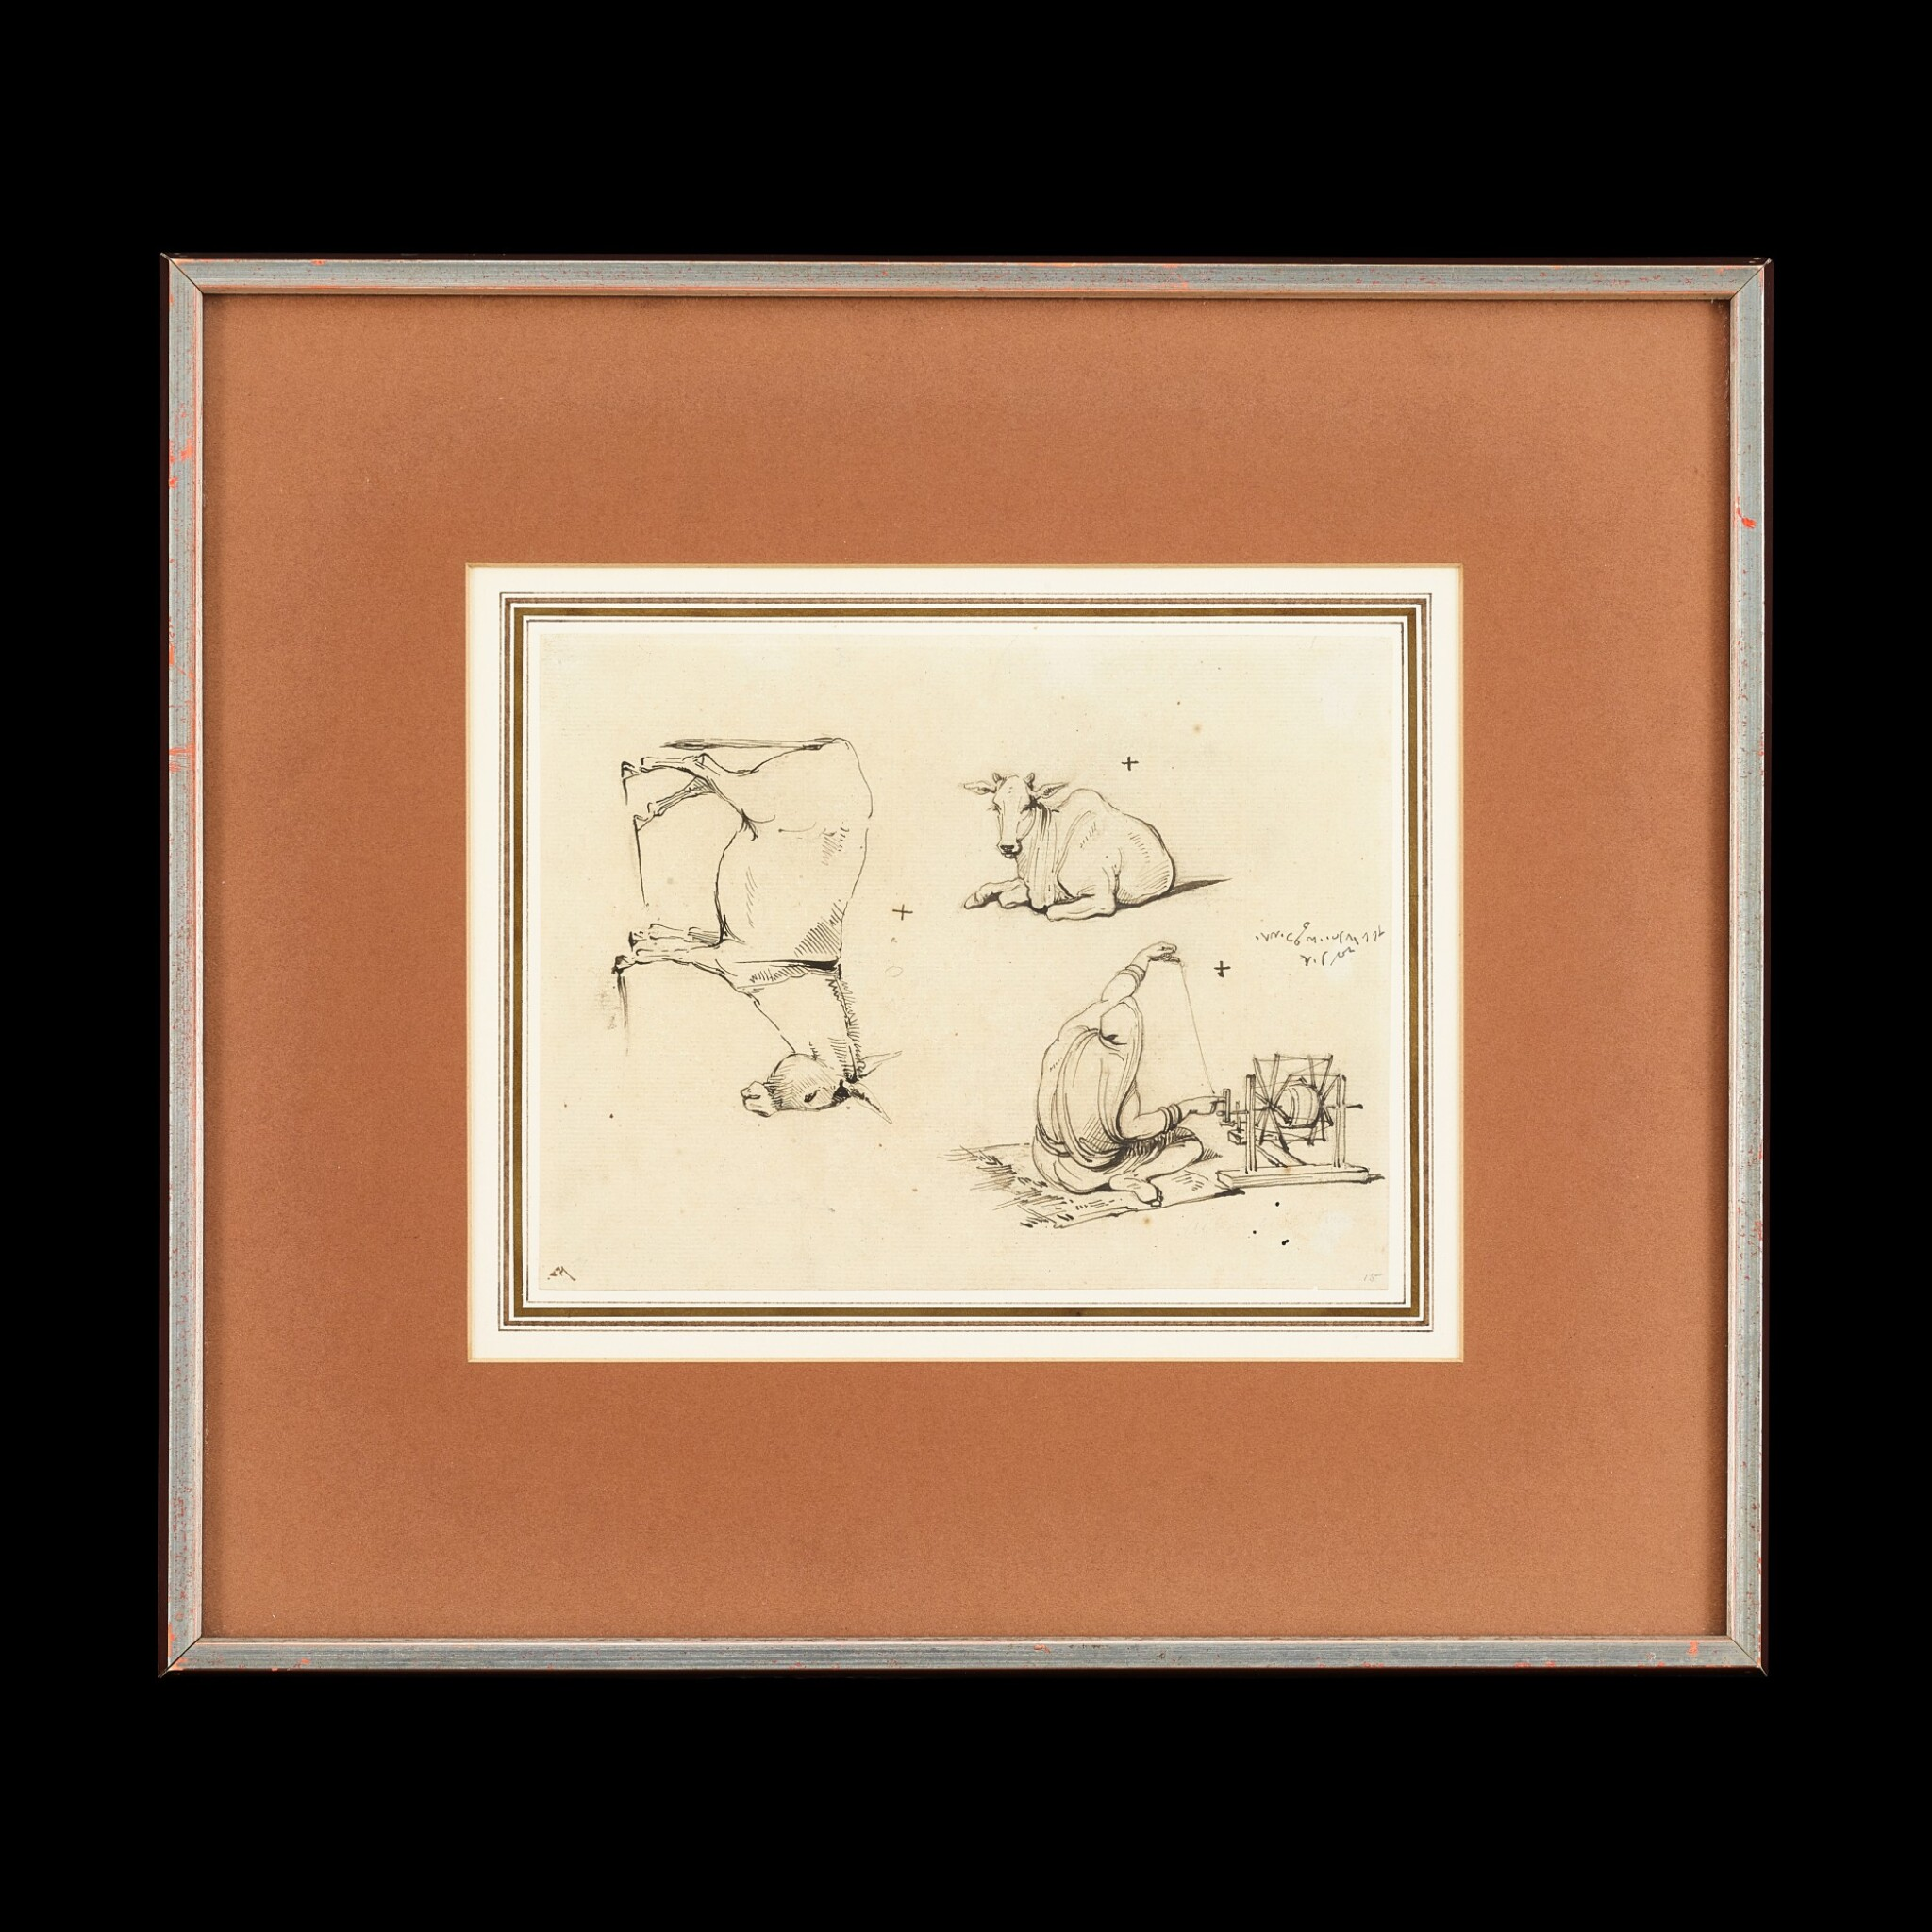 View full screen - View 1 of Lot 200. George Chinnery (1774-1852) Two Sketches of Indian Woman Spinning | 錢納利(1774-1852年)    素描印度婦女紡紗圖一組兩幅    紙本鋼筆及墨水 鏡框.